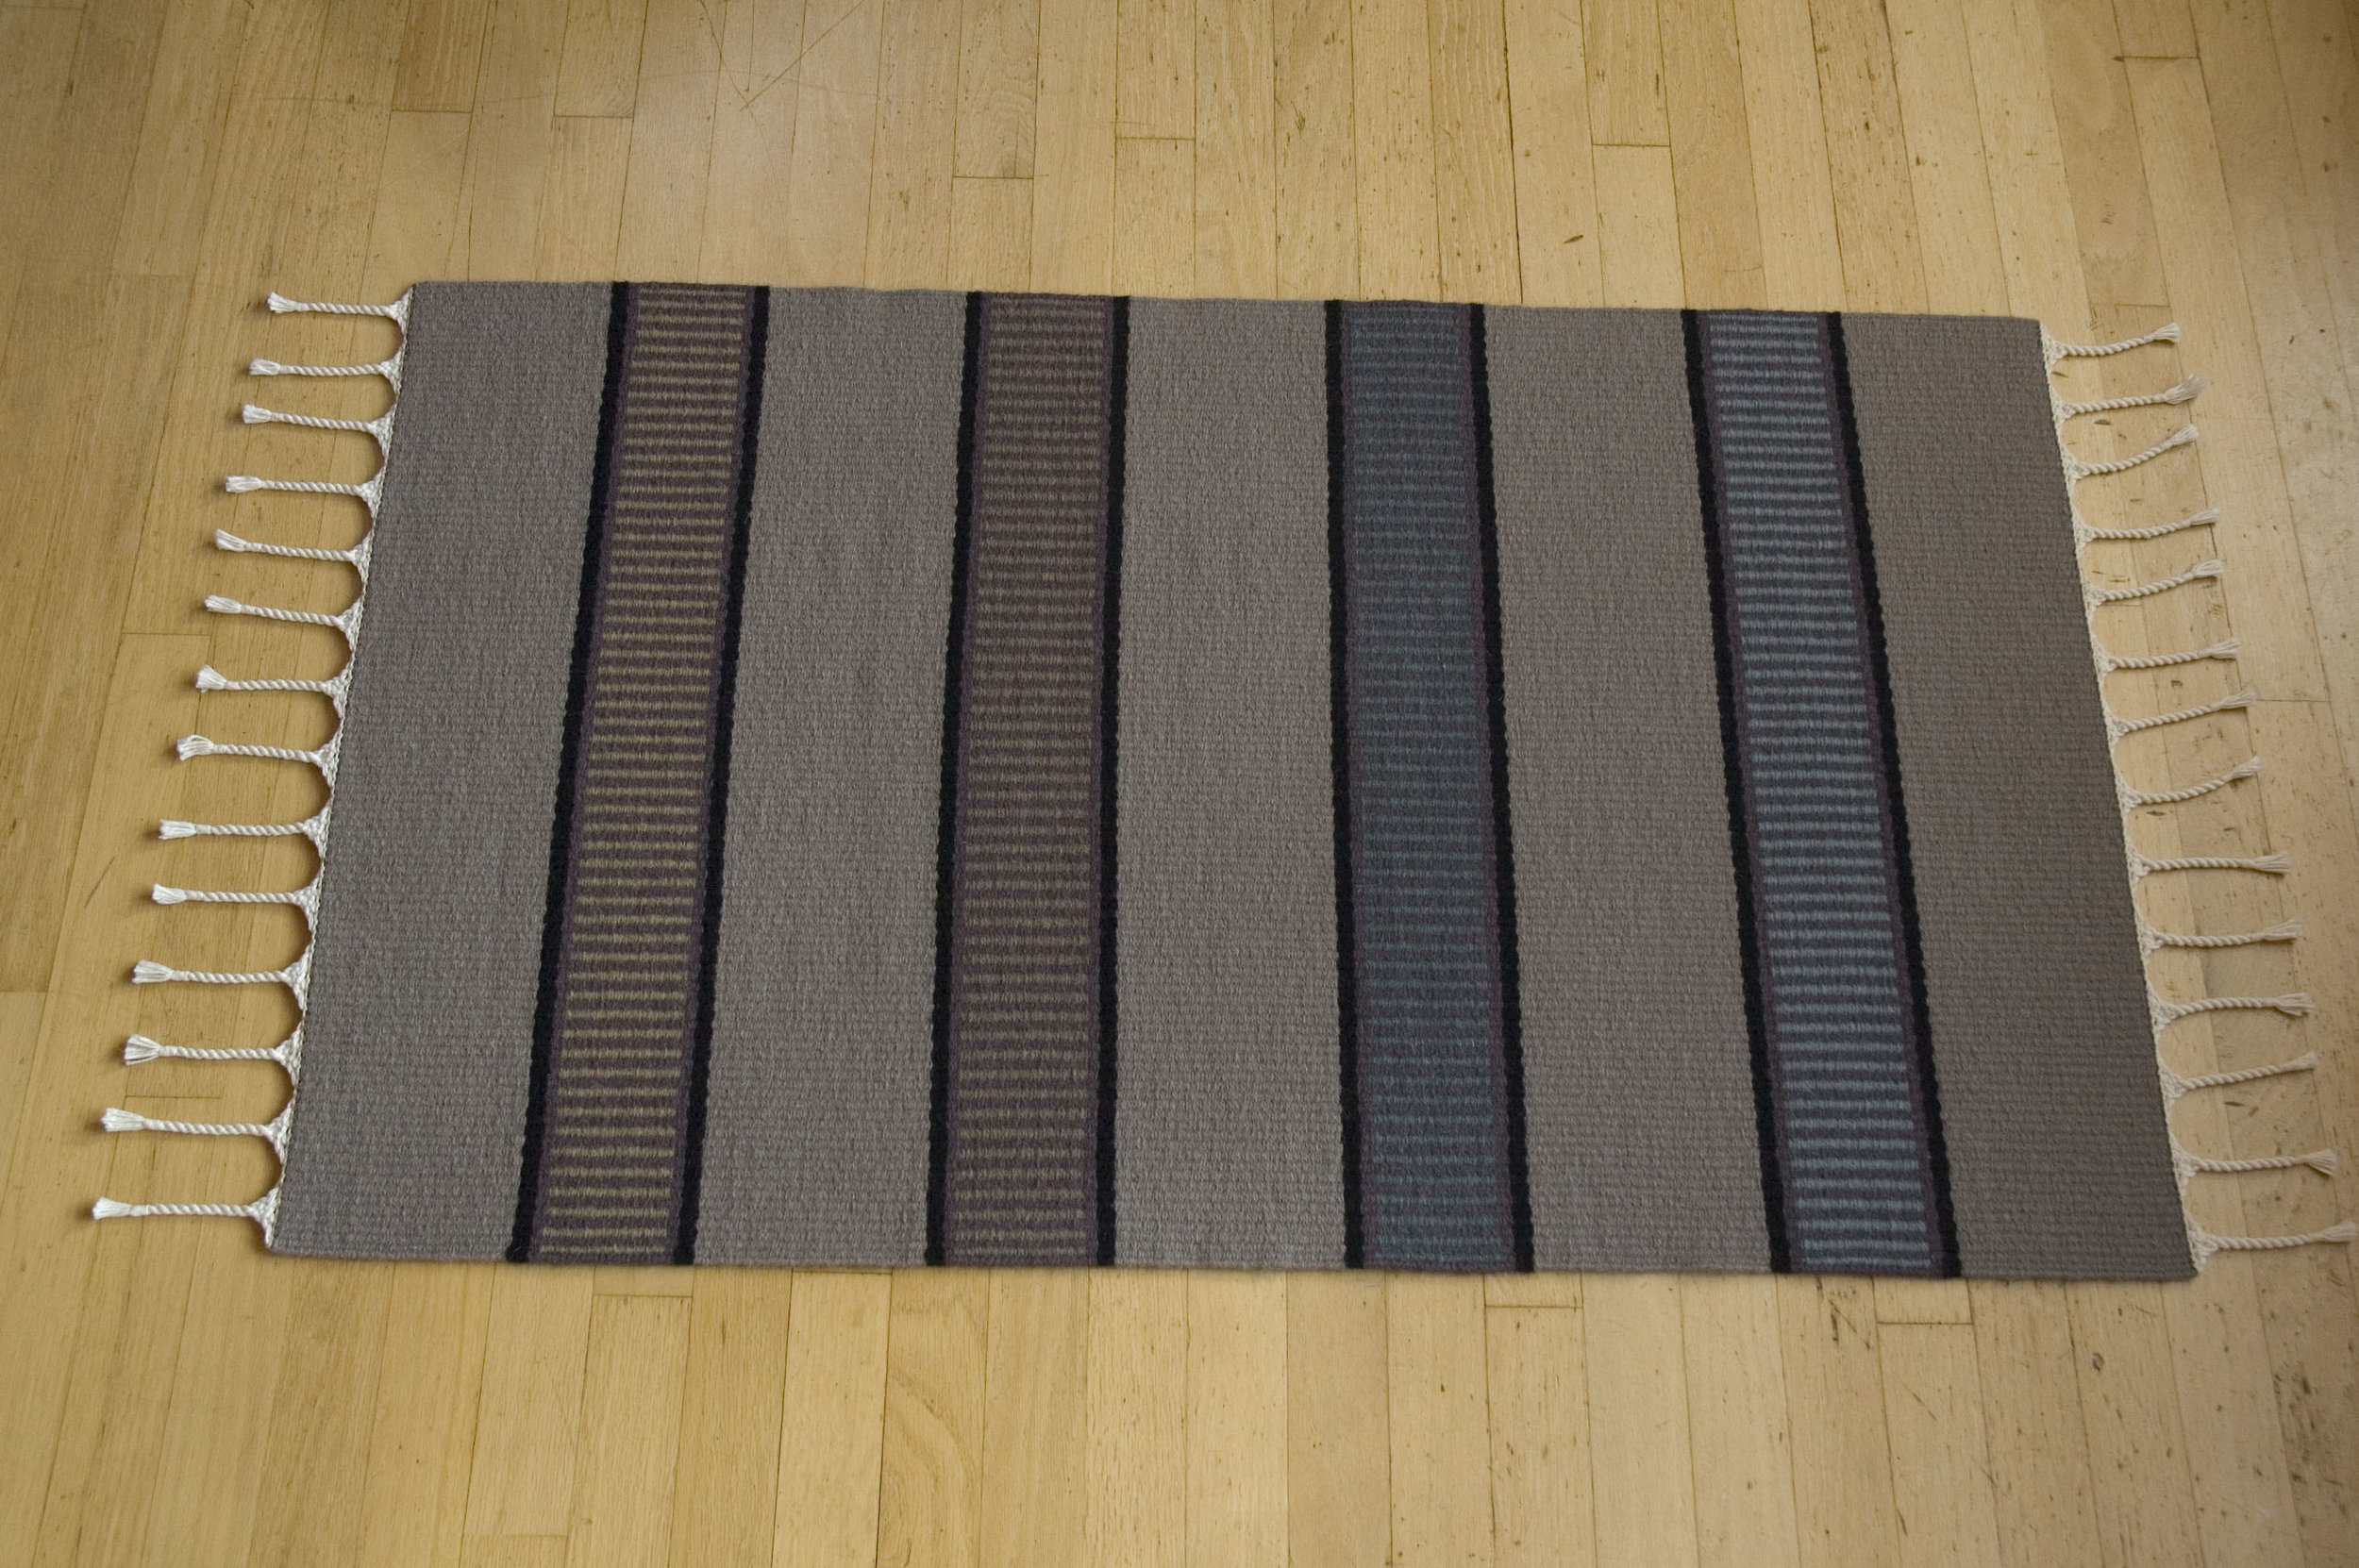 Plain Weave Rug with Stripes